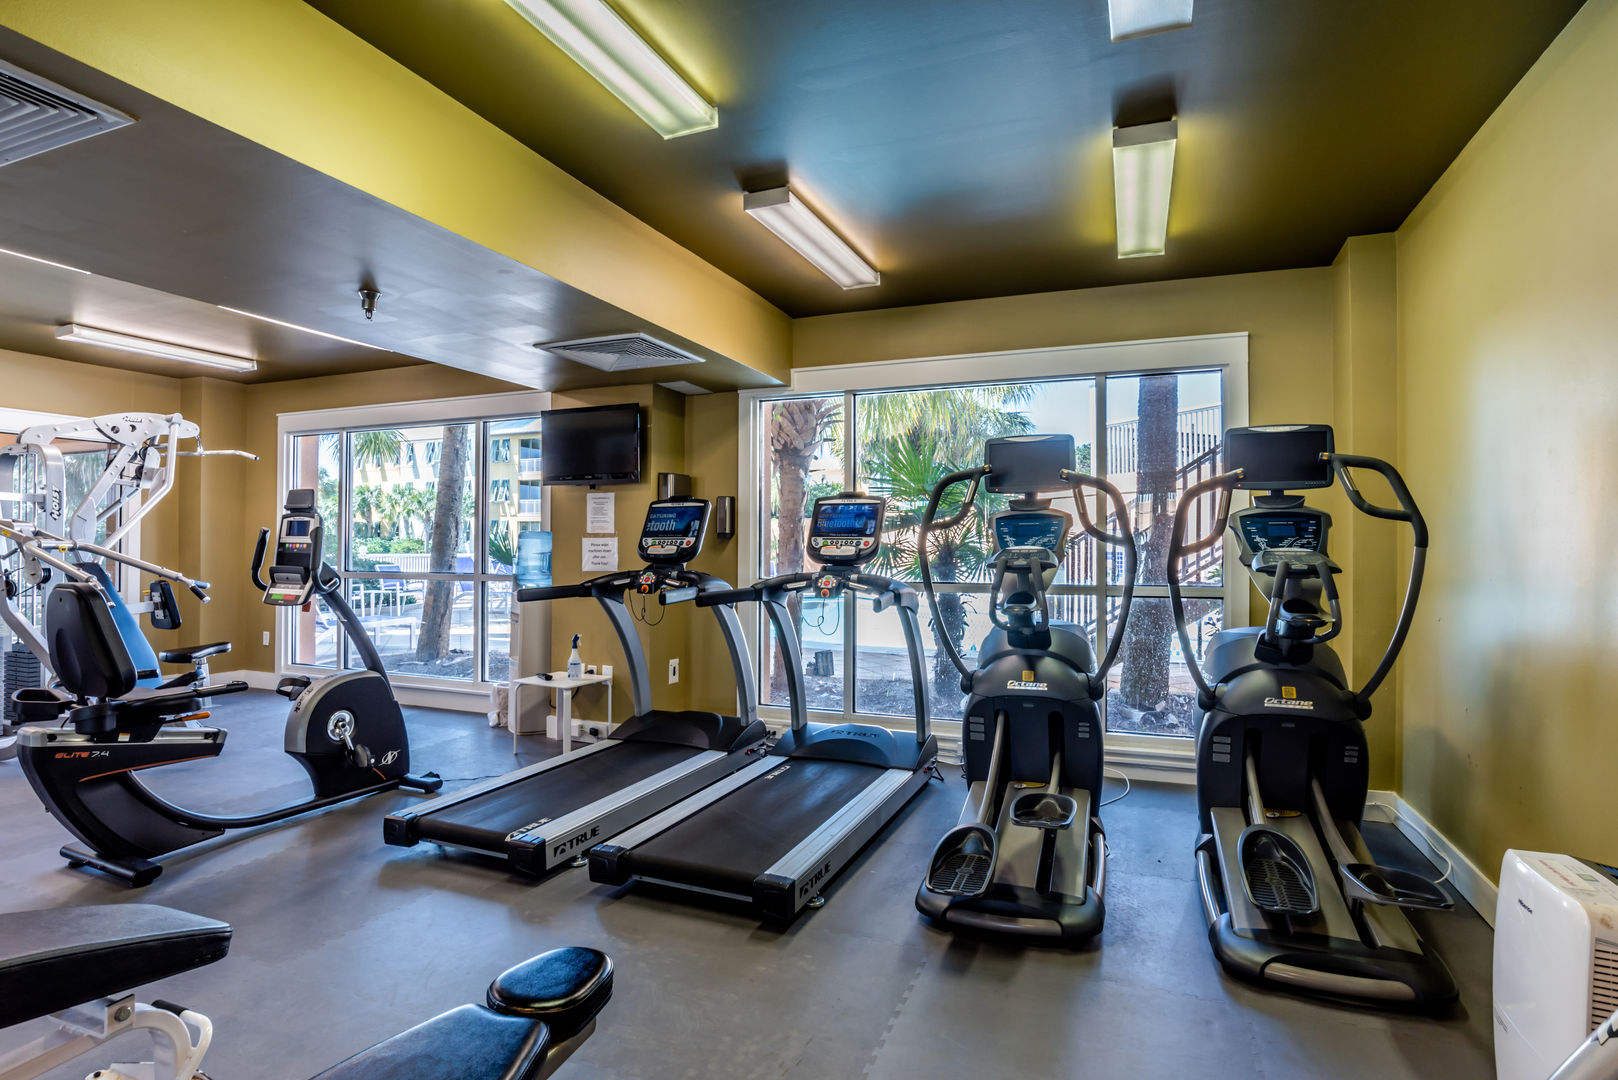 Fitness Center with Treadmills and Elliptical Machines.